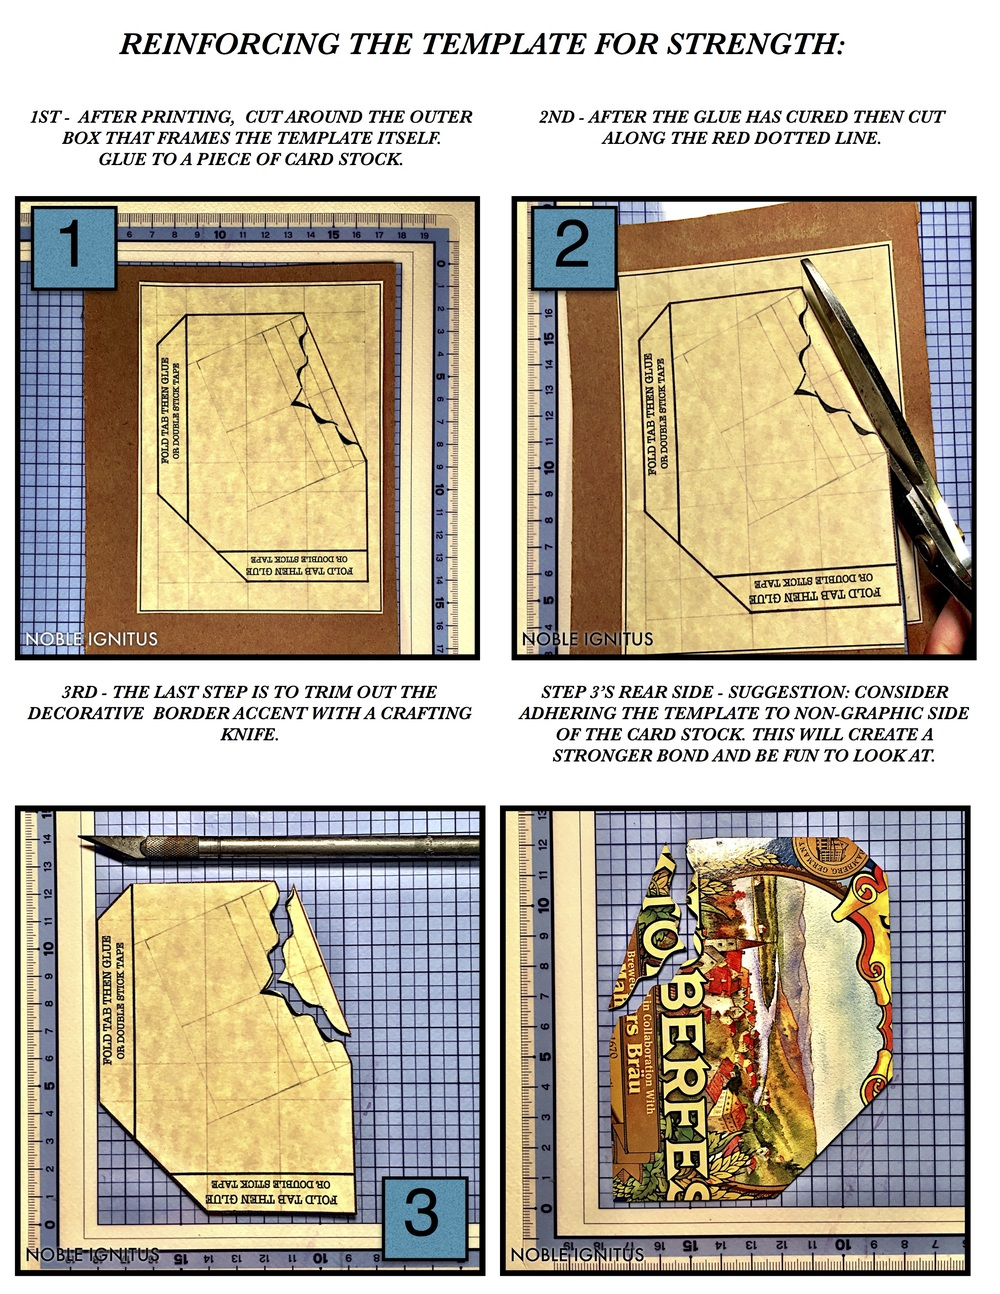 Instructional for Reinforcing the Template